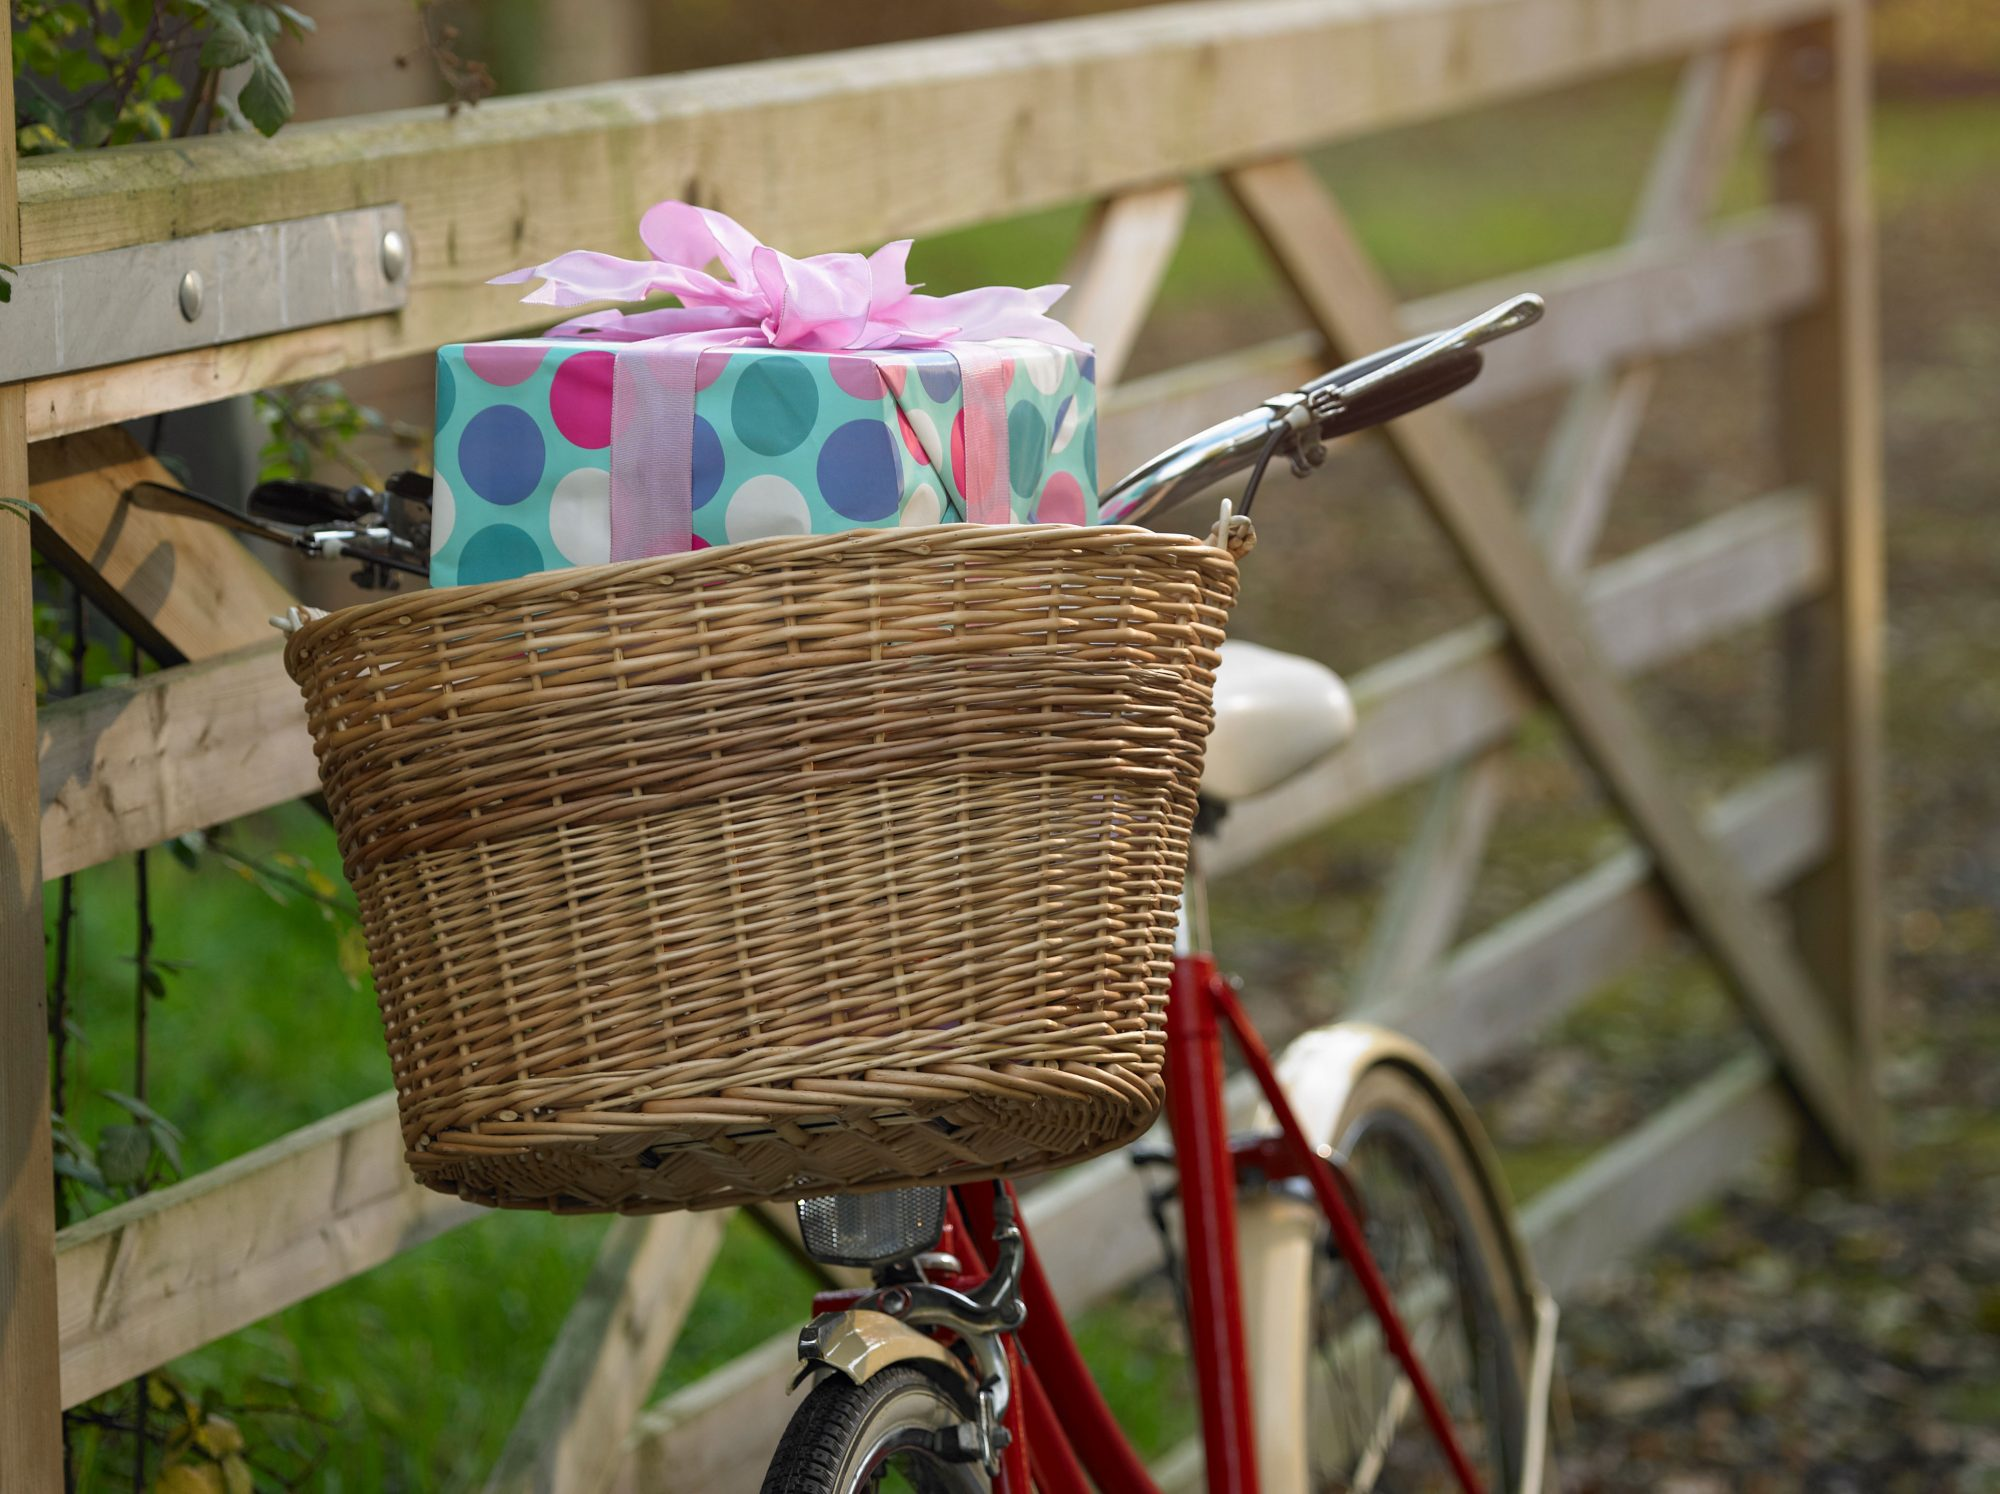 Bike with Birthday Gift in Basket